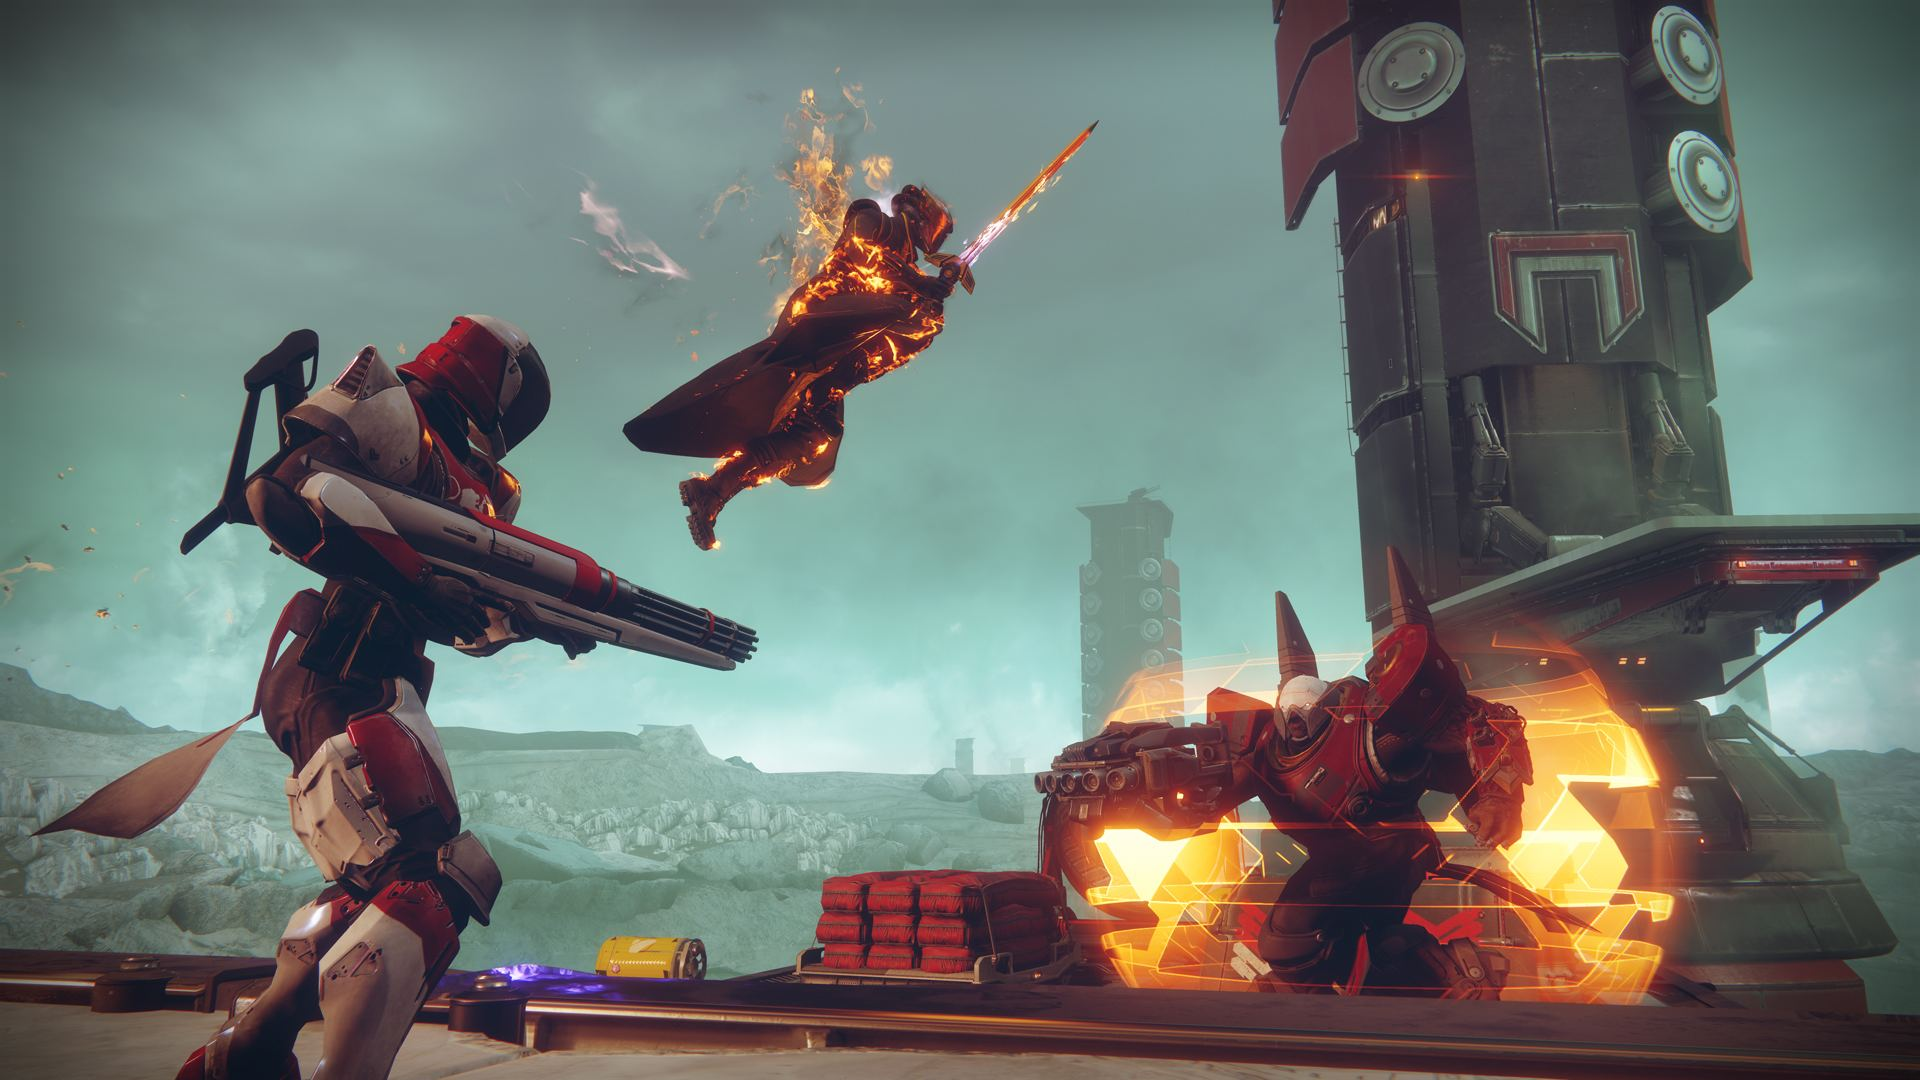 Bungie wants Destiny 2 cross-play in the future - MSPoweruser